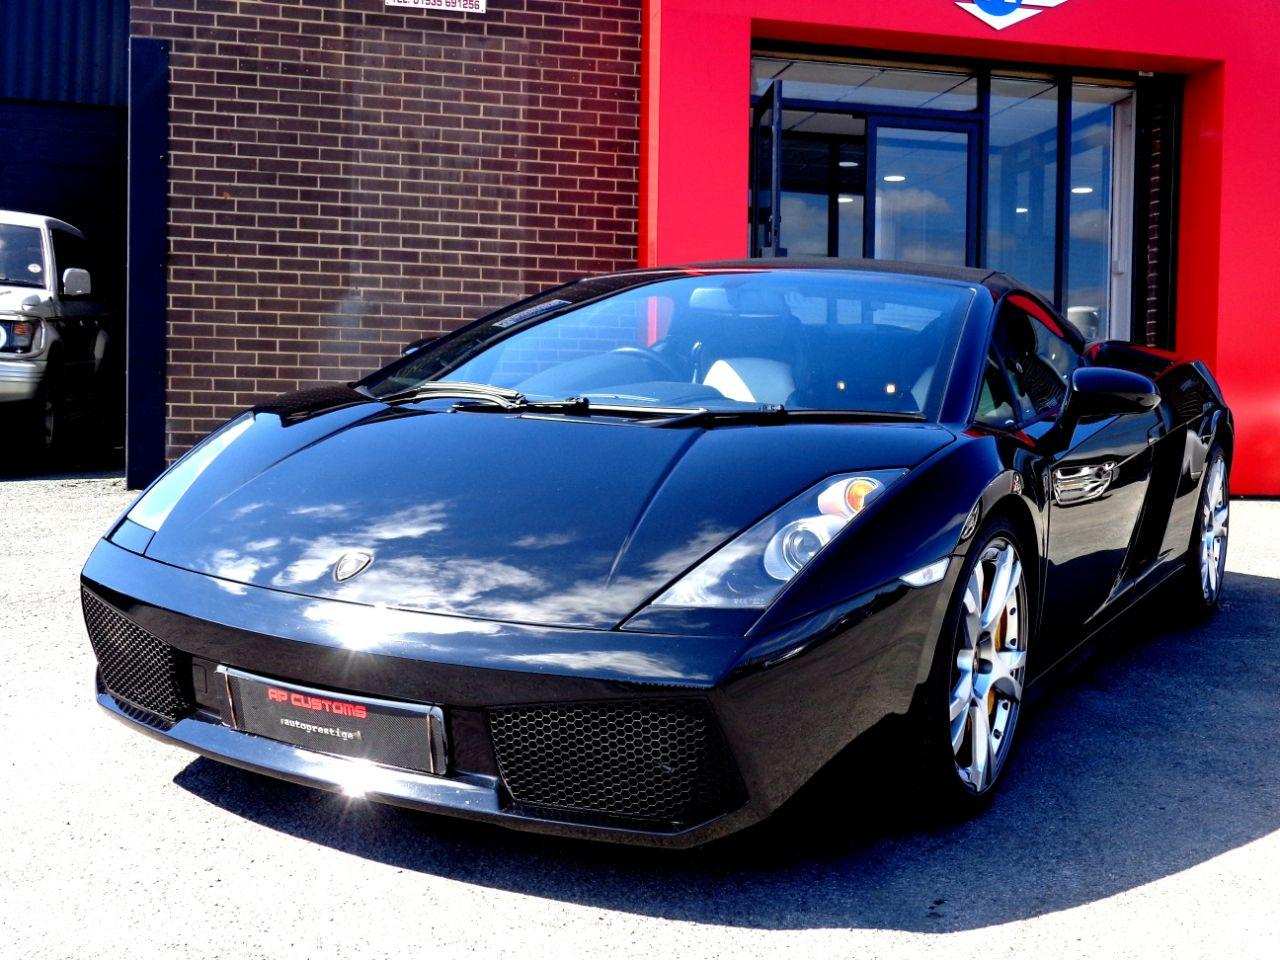 Lamborghini Gallardo 5.0 SPYDER E-GEAR WITH EXTRAS RARE GULLWING DOORS EXTENSIVE HISTORY FILE VERY HIGH SPEC Convertible Petrol Black at Autoprestige Bradford